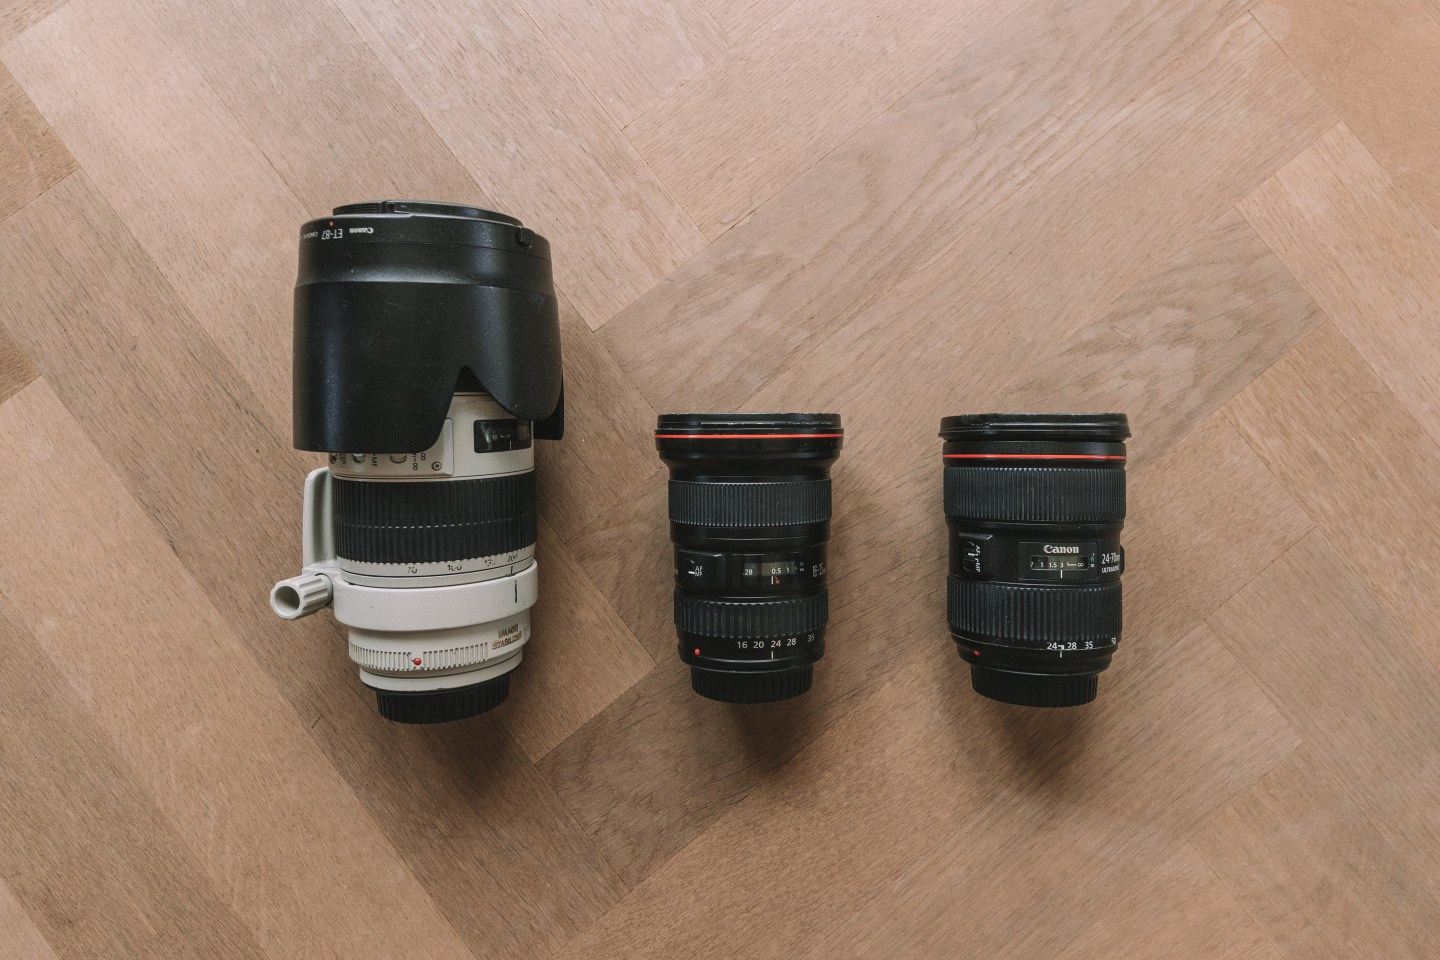 Canon Camera Lenses - Allie M. Taylor Photography Gear